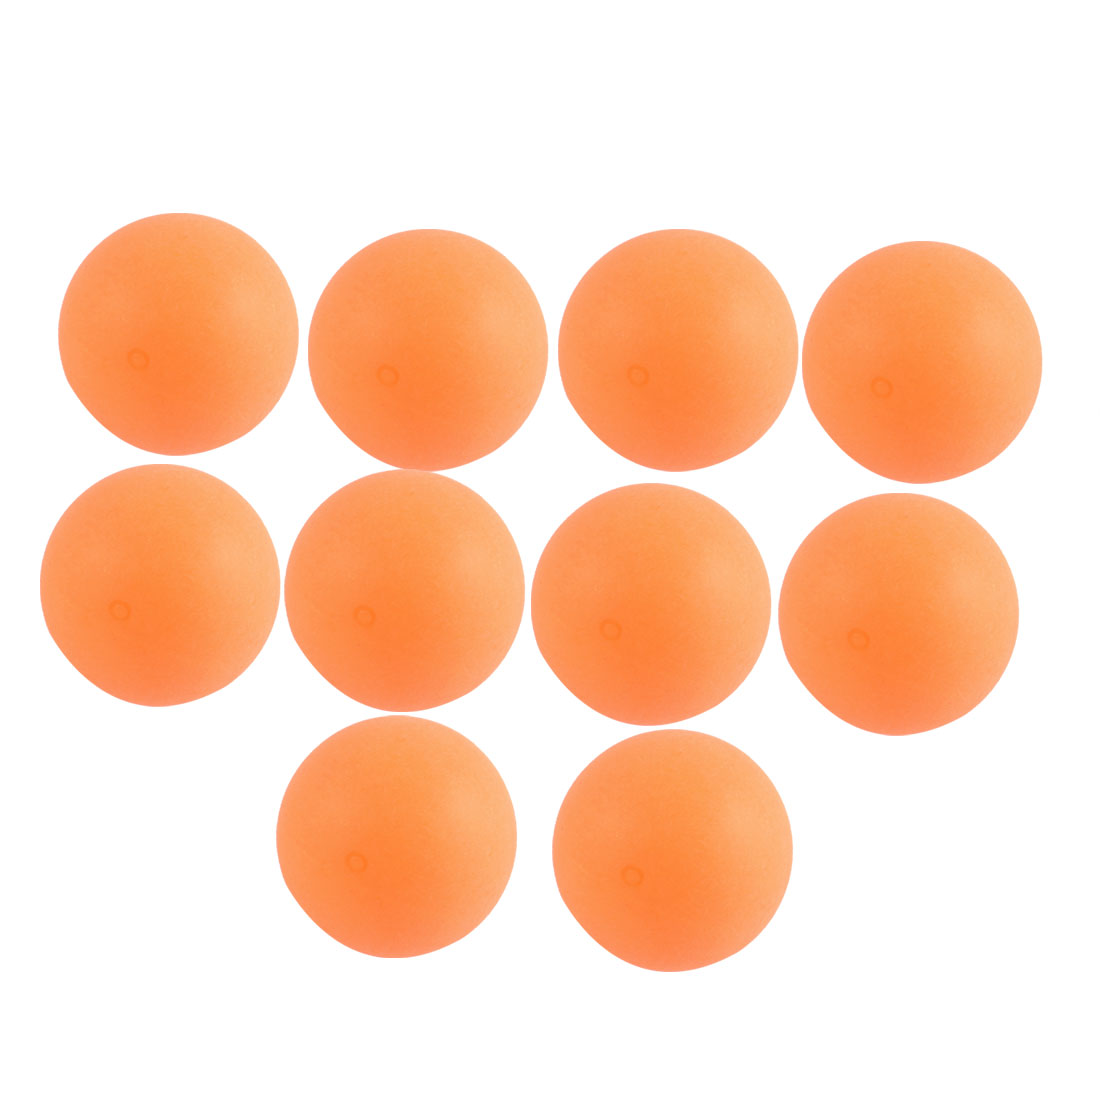 Competition Sports Plastic 40mm Diameter Table Tennis Balls Ping Pong 10 Pcs Orange